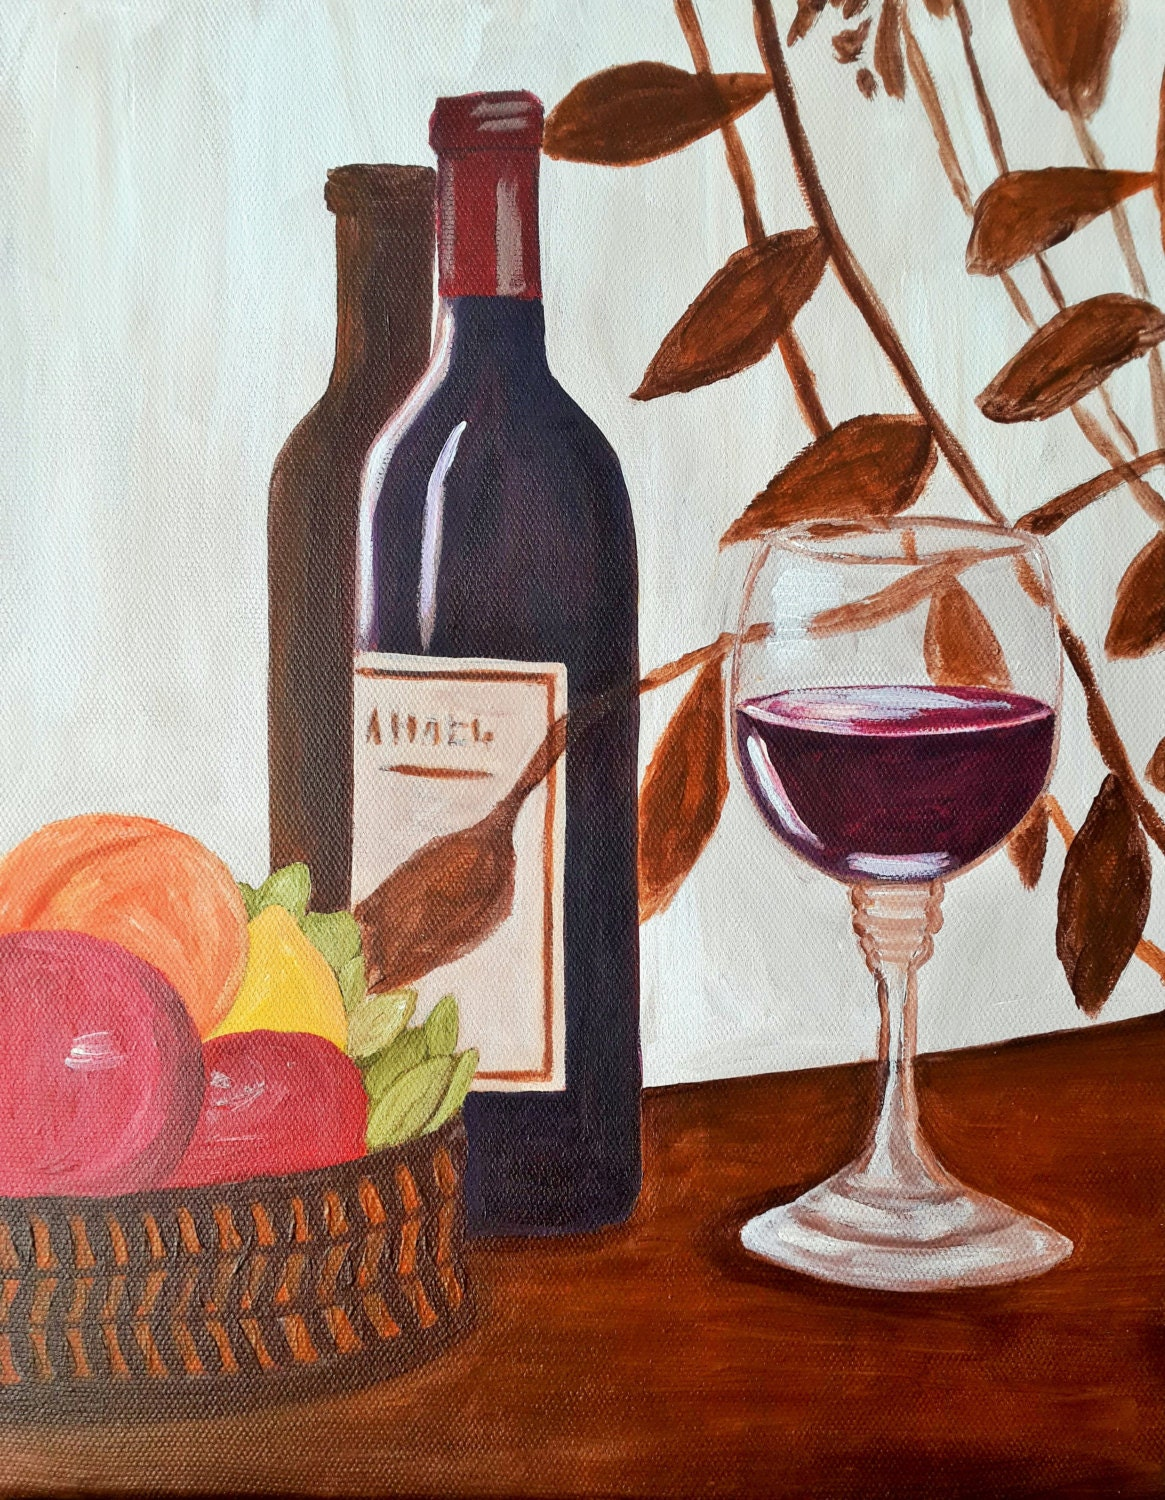 Acrylic paintings of wine bottles bing images for How to paint a wine glass with acrylics